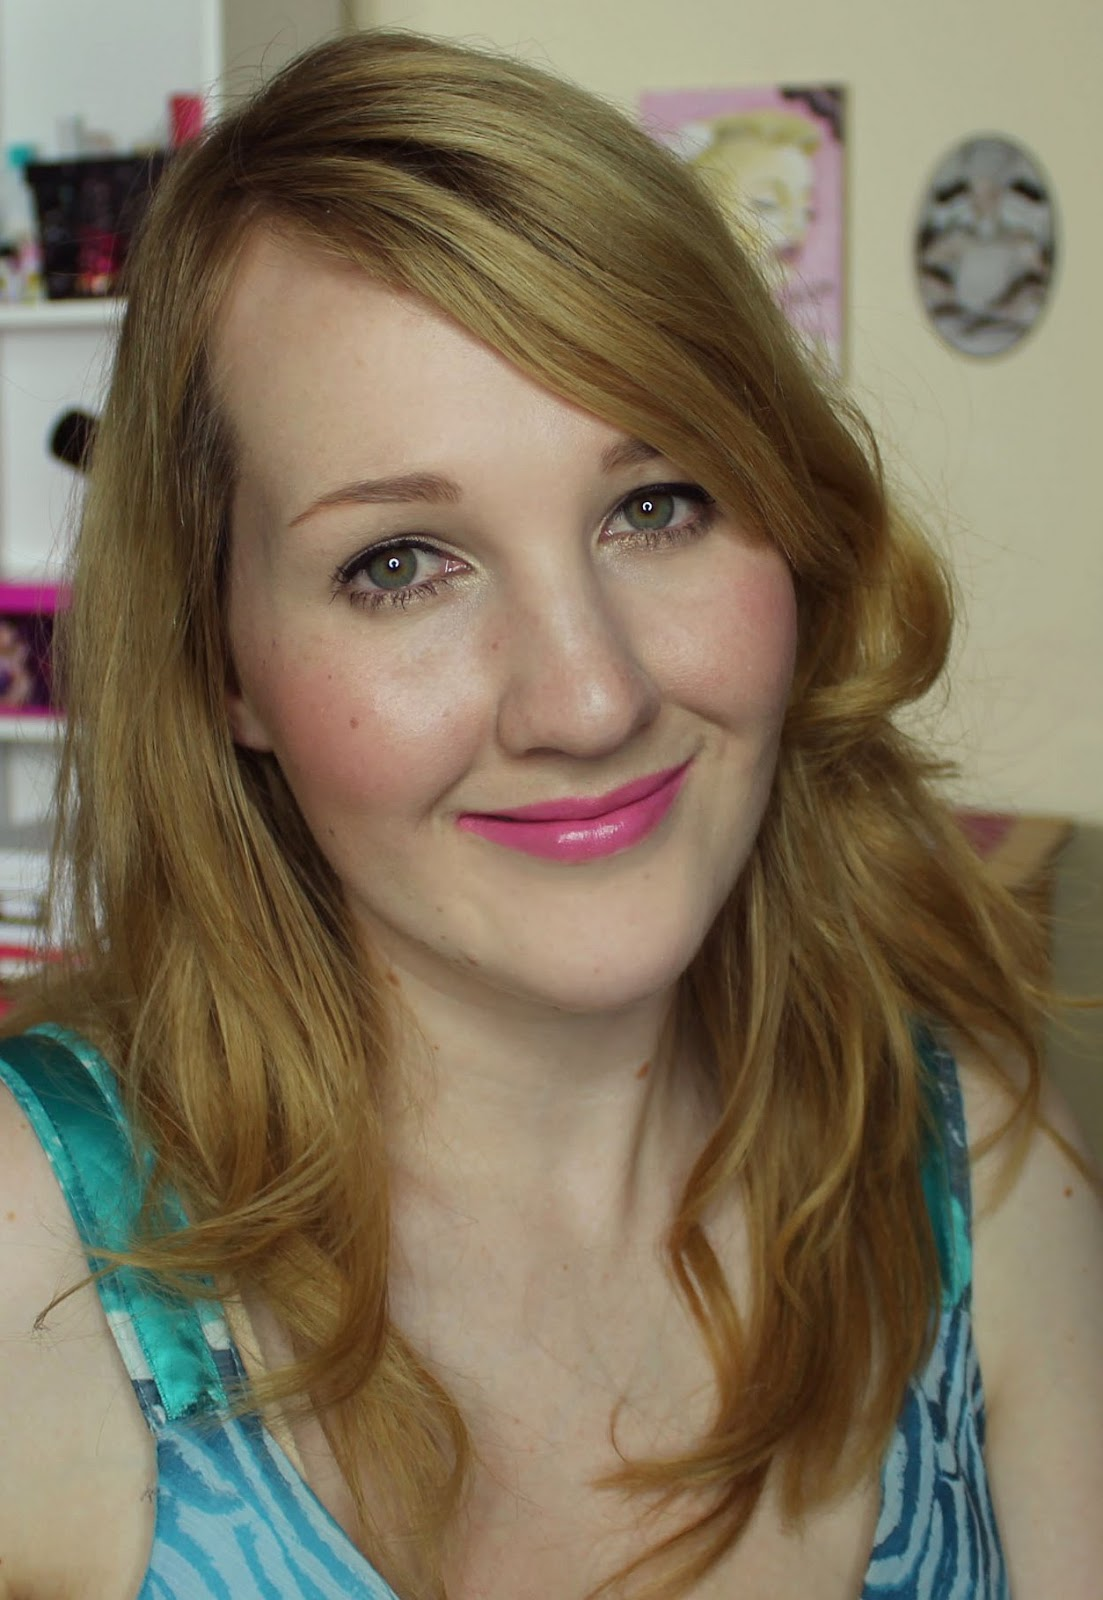 W7 Go West! Matte Lipstick - Perfect Pink Swatches & Review